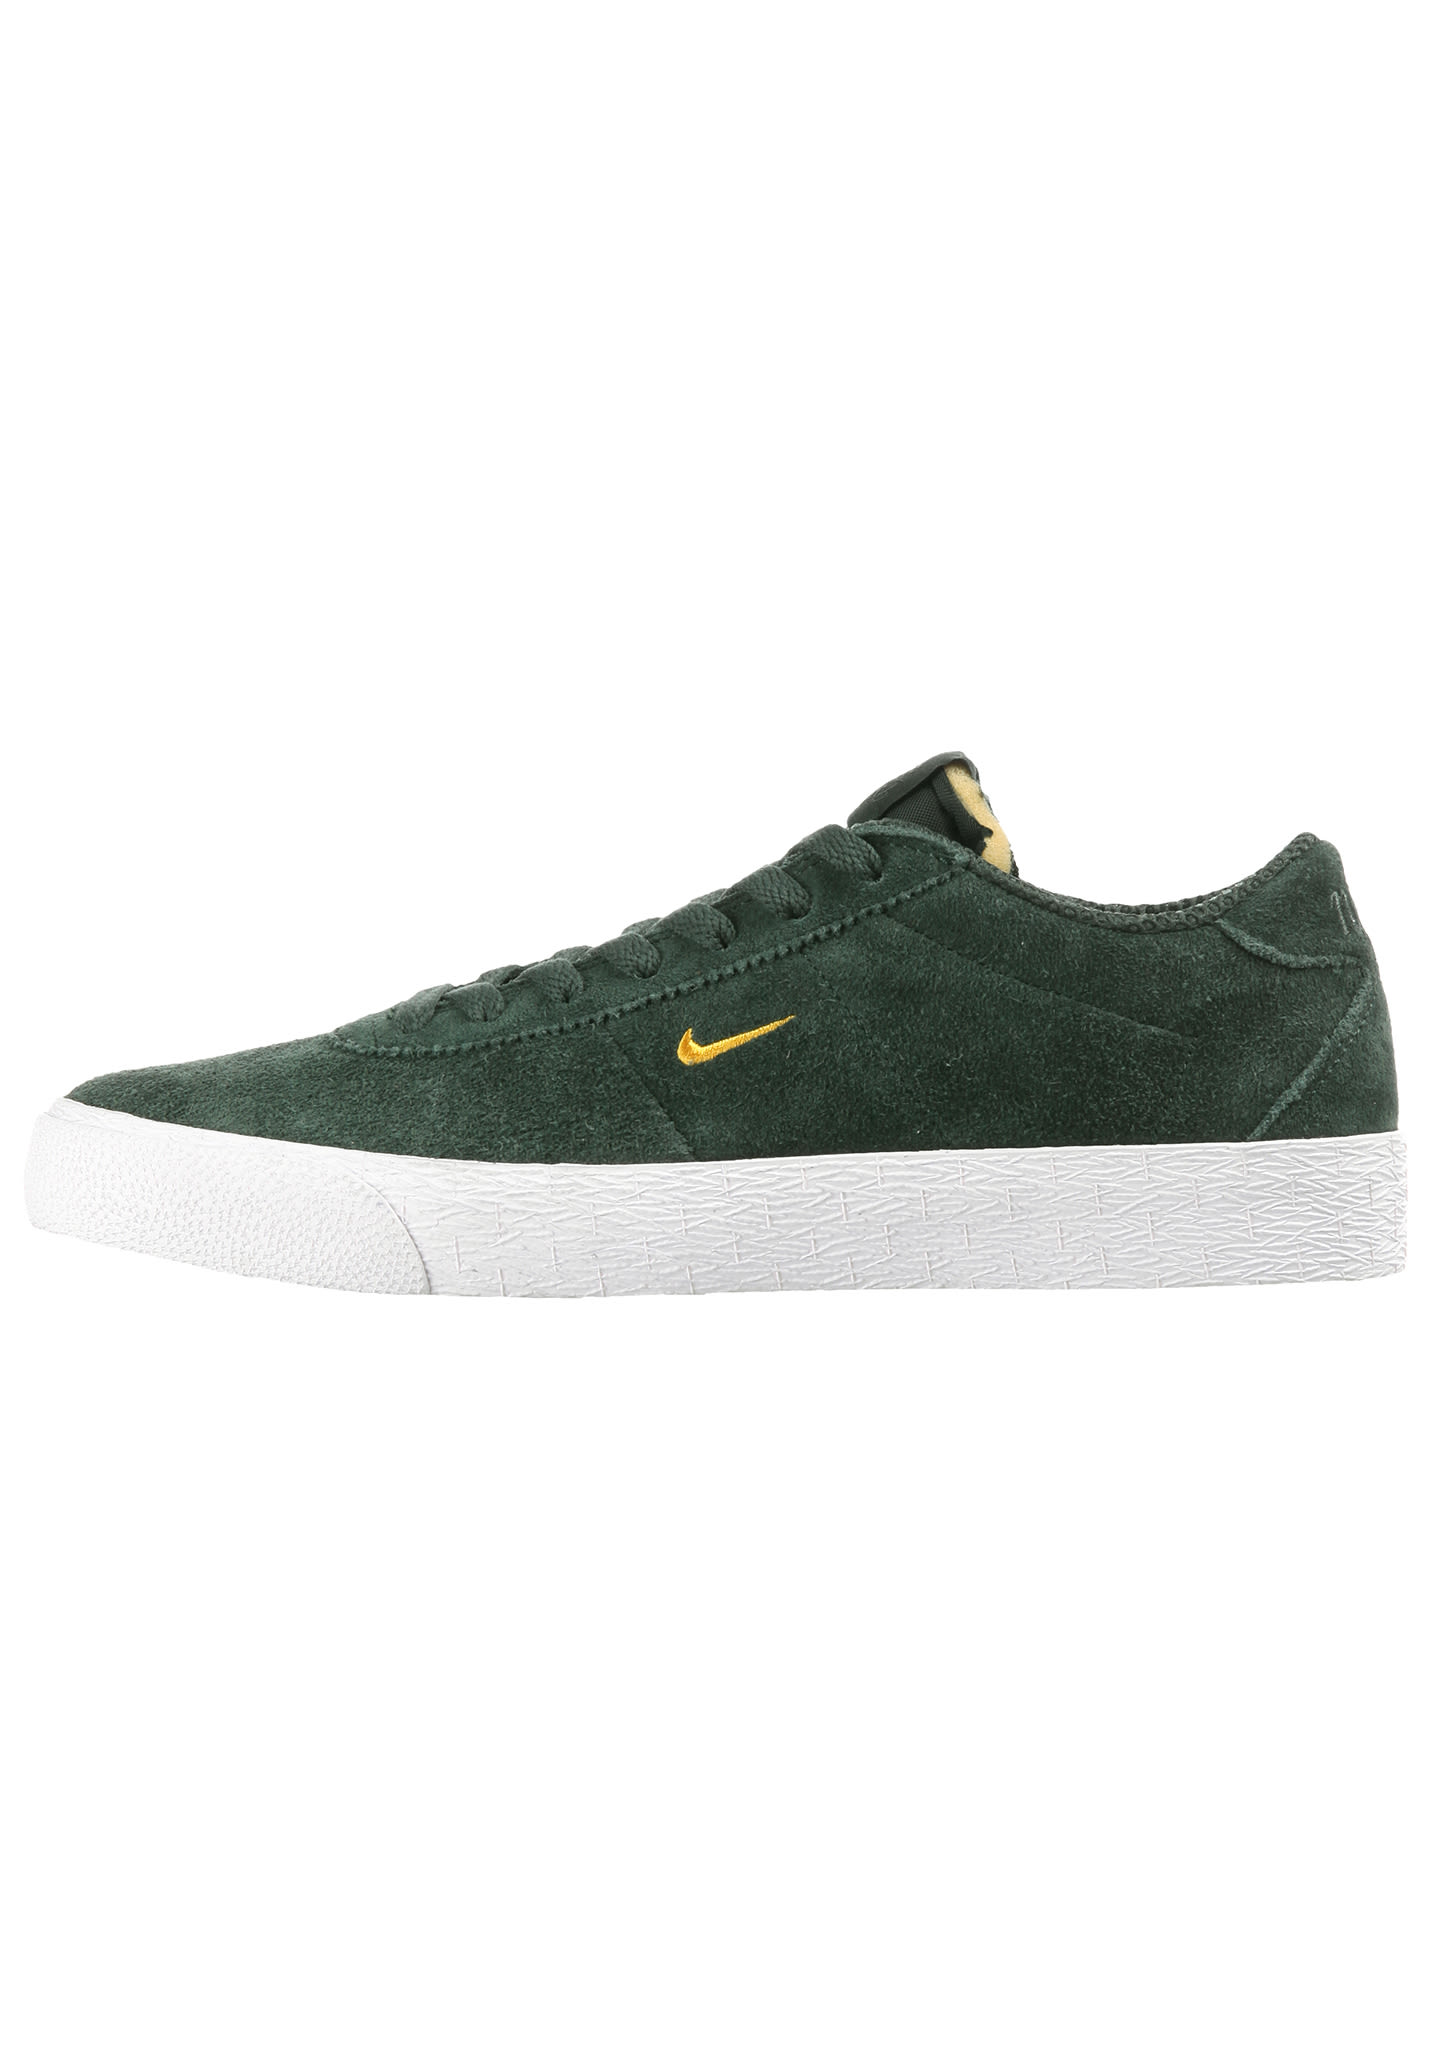 d3fc887a5cbae NIKE SB Zoom Bruin - Sneakers for Men - Green - Planet Sports